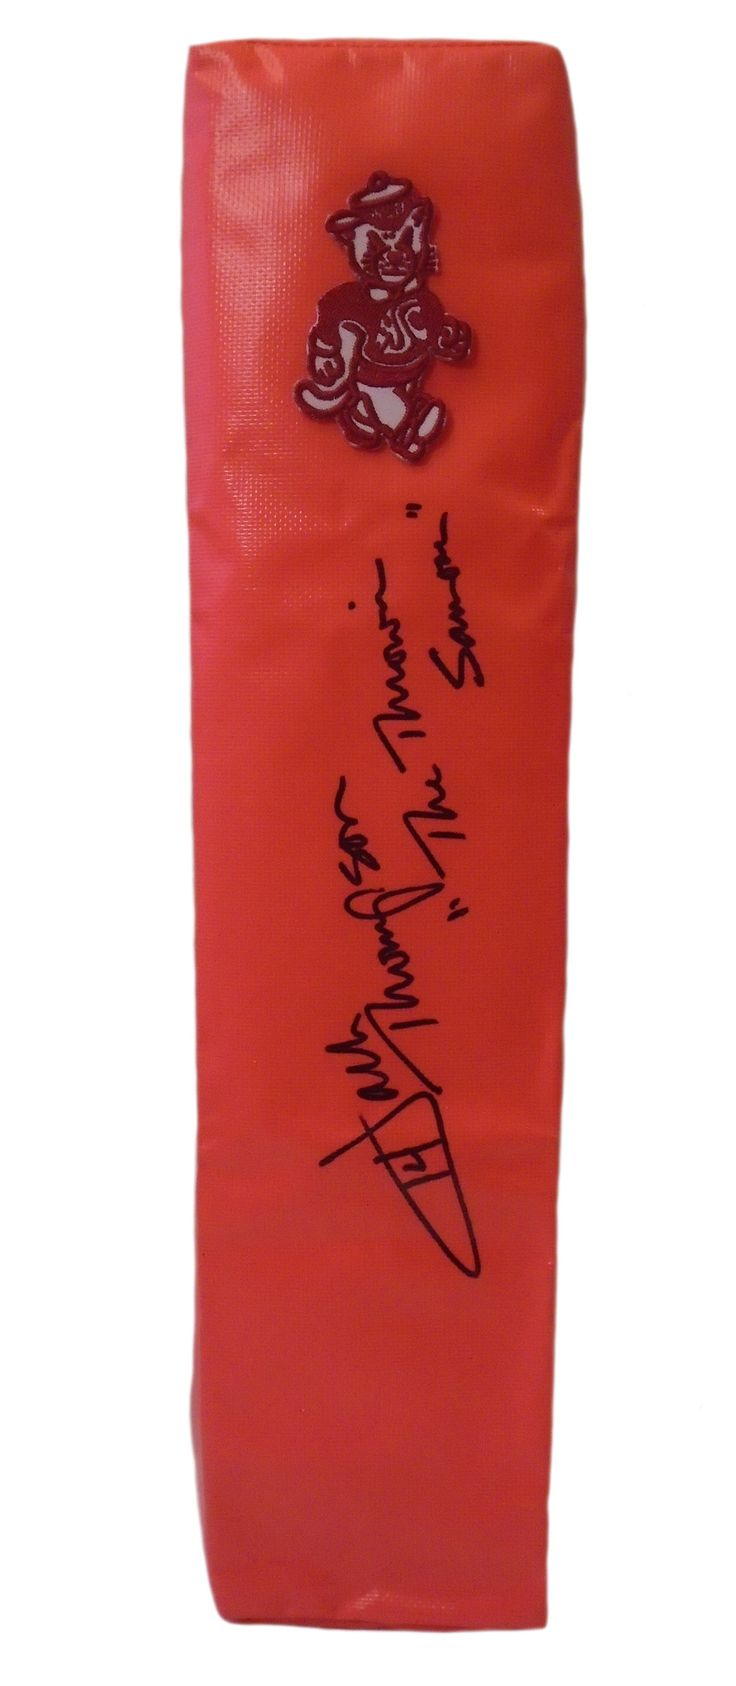 Jack Thompson signed Washington State Cougars full size football touchdown end zone pylon w/ proof photo.  Proof photo of Jack signing will be included with your purchase along with a COA issued from Southwestconnection-Memorabilia, guaranteeing the item to pass authentication services from PSA/DNA or JSA. Free USPS shipping. www.AutographedwithProof.com is your one stop for autographed collectibles from WSU Cougars & NCAA teams. Check back with us often, as we are always obtaining new…